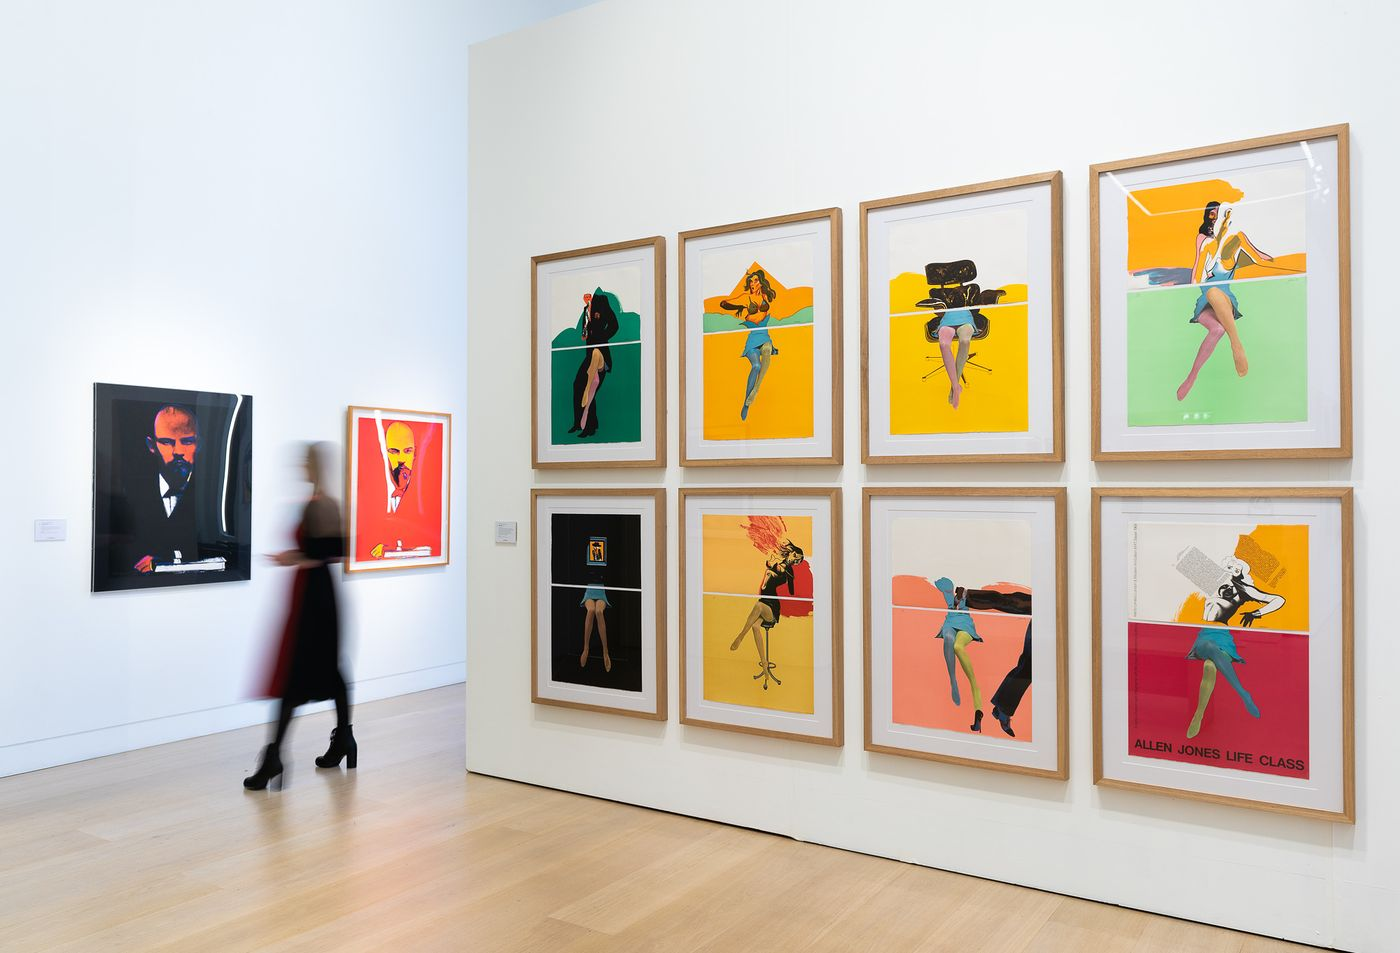 Picasso, Ruscha, Wood and Gilbert & George: Our Editions team picks their favorite pieces from this month's upcoming Evening & Day sales.